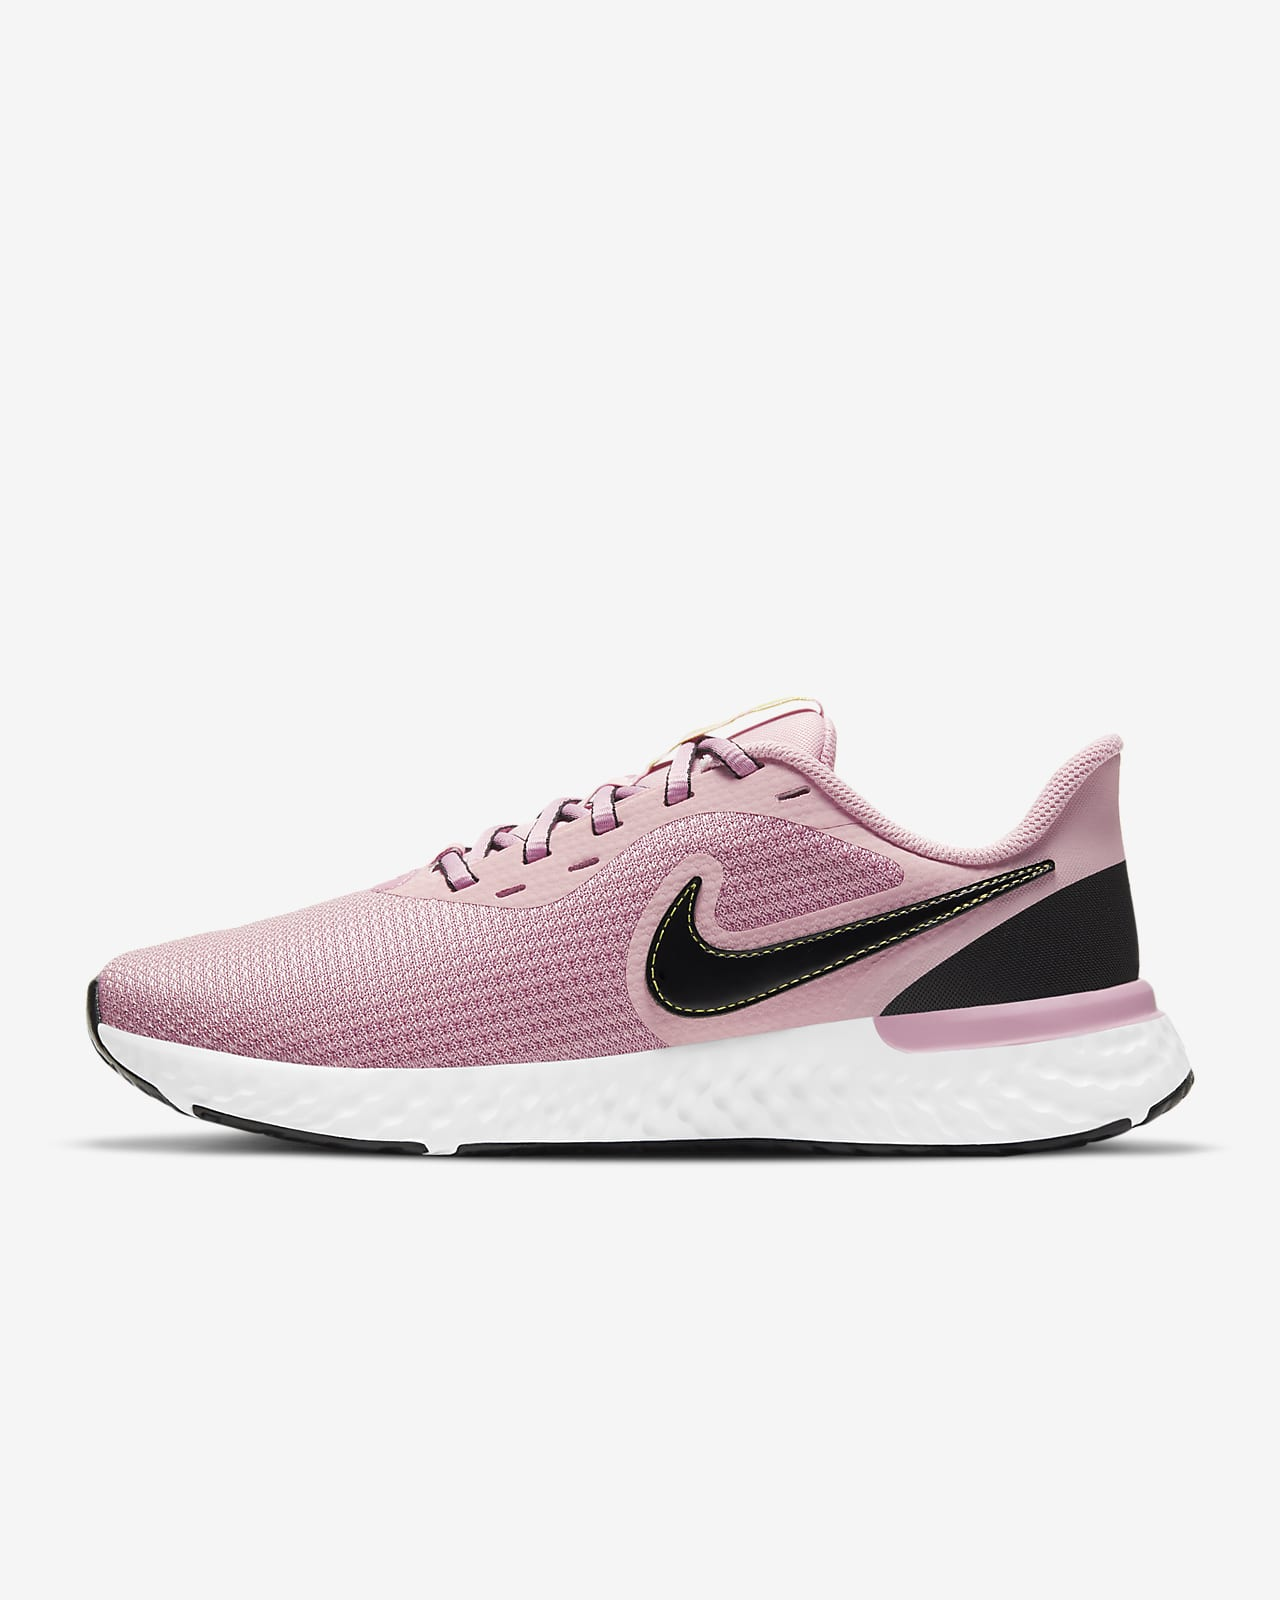 Nike Revolution 5 EXT Women's Road Running Shoes